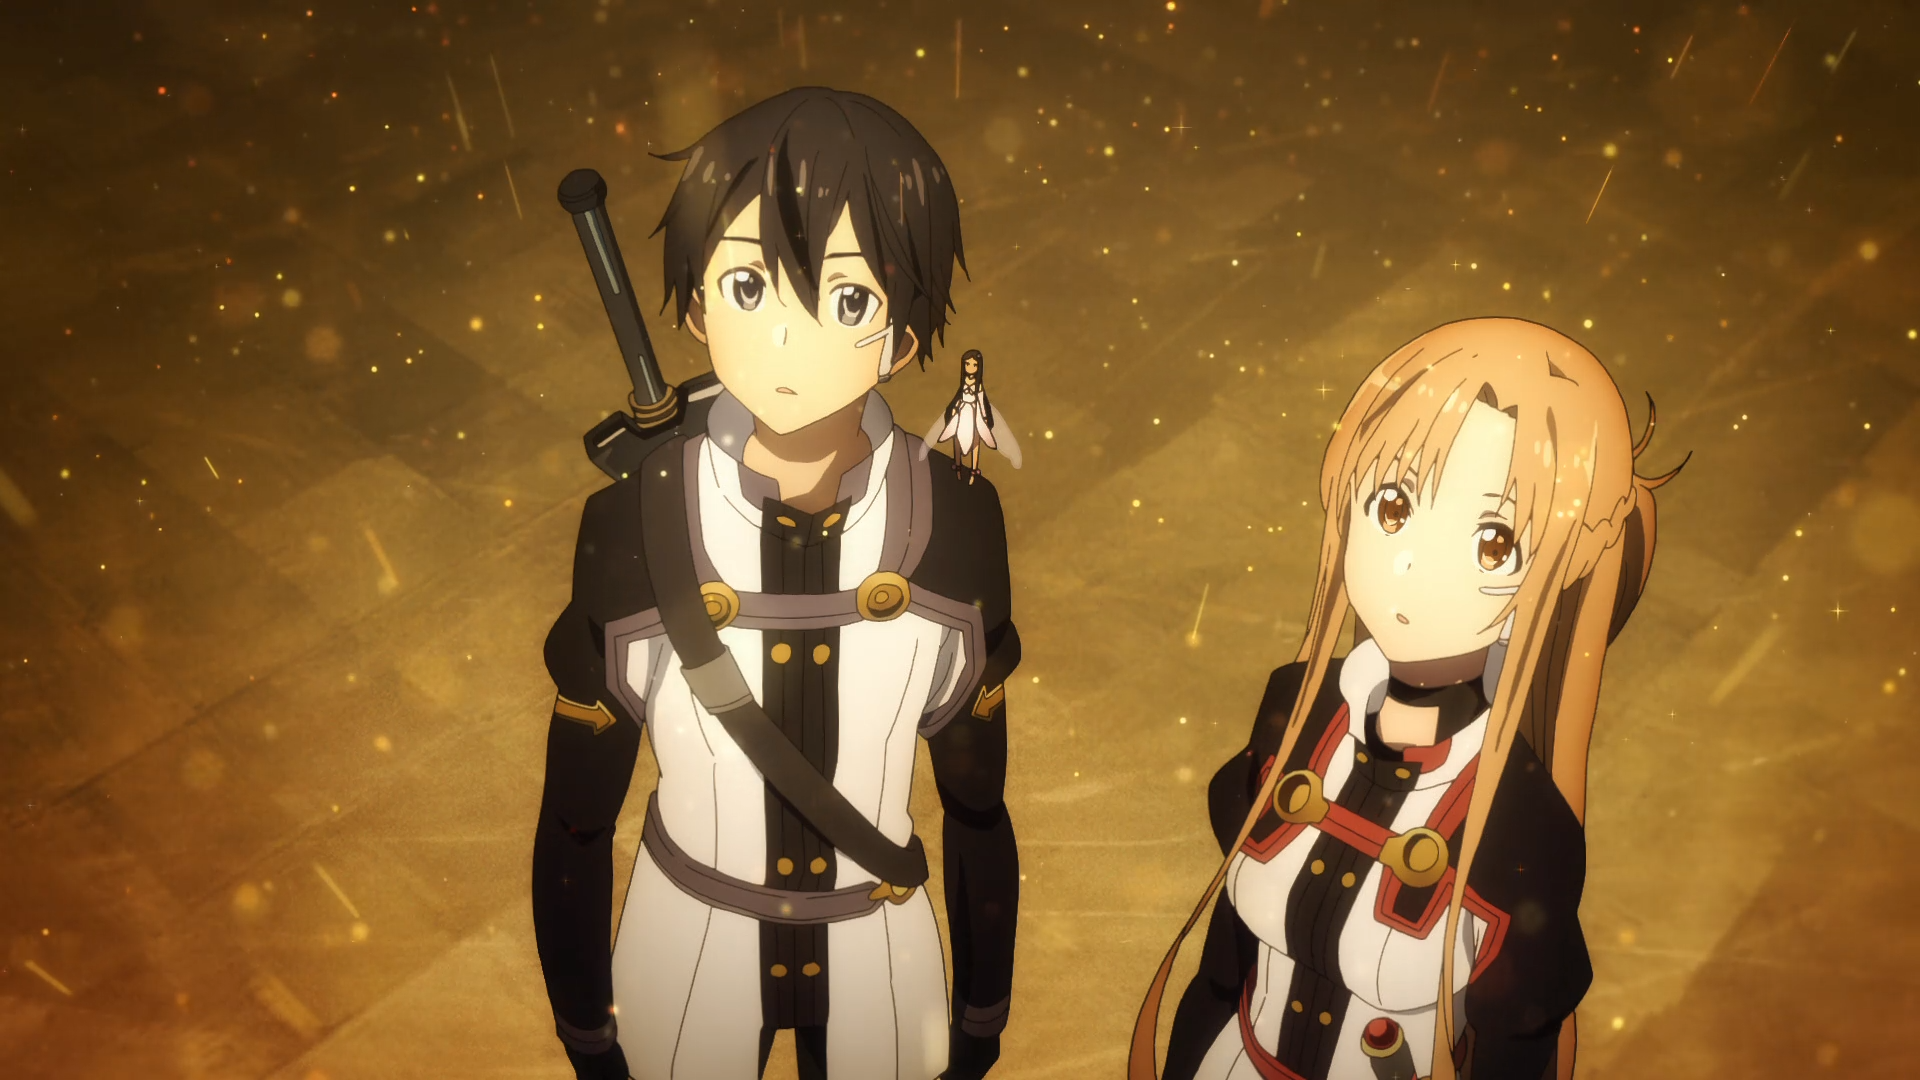 Sword Art Online Movie: Ordinal Scale / Kirito, Yui, and Asuna standing together